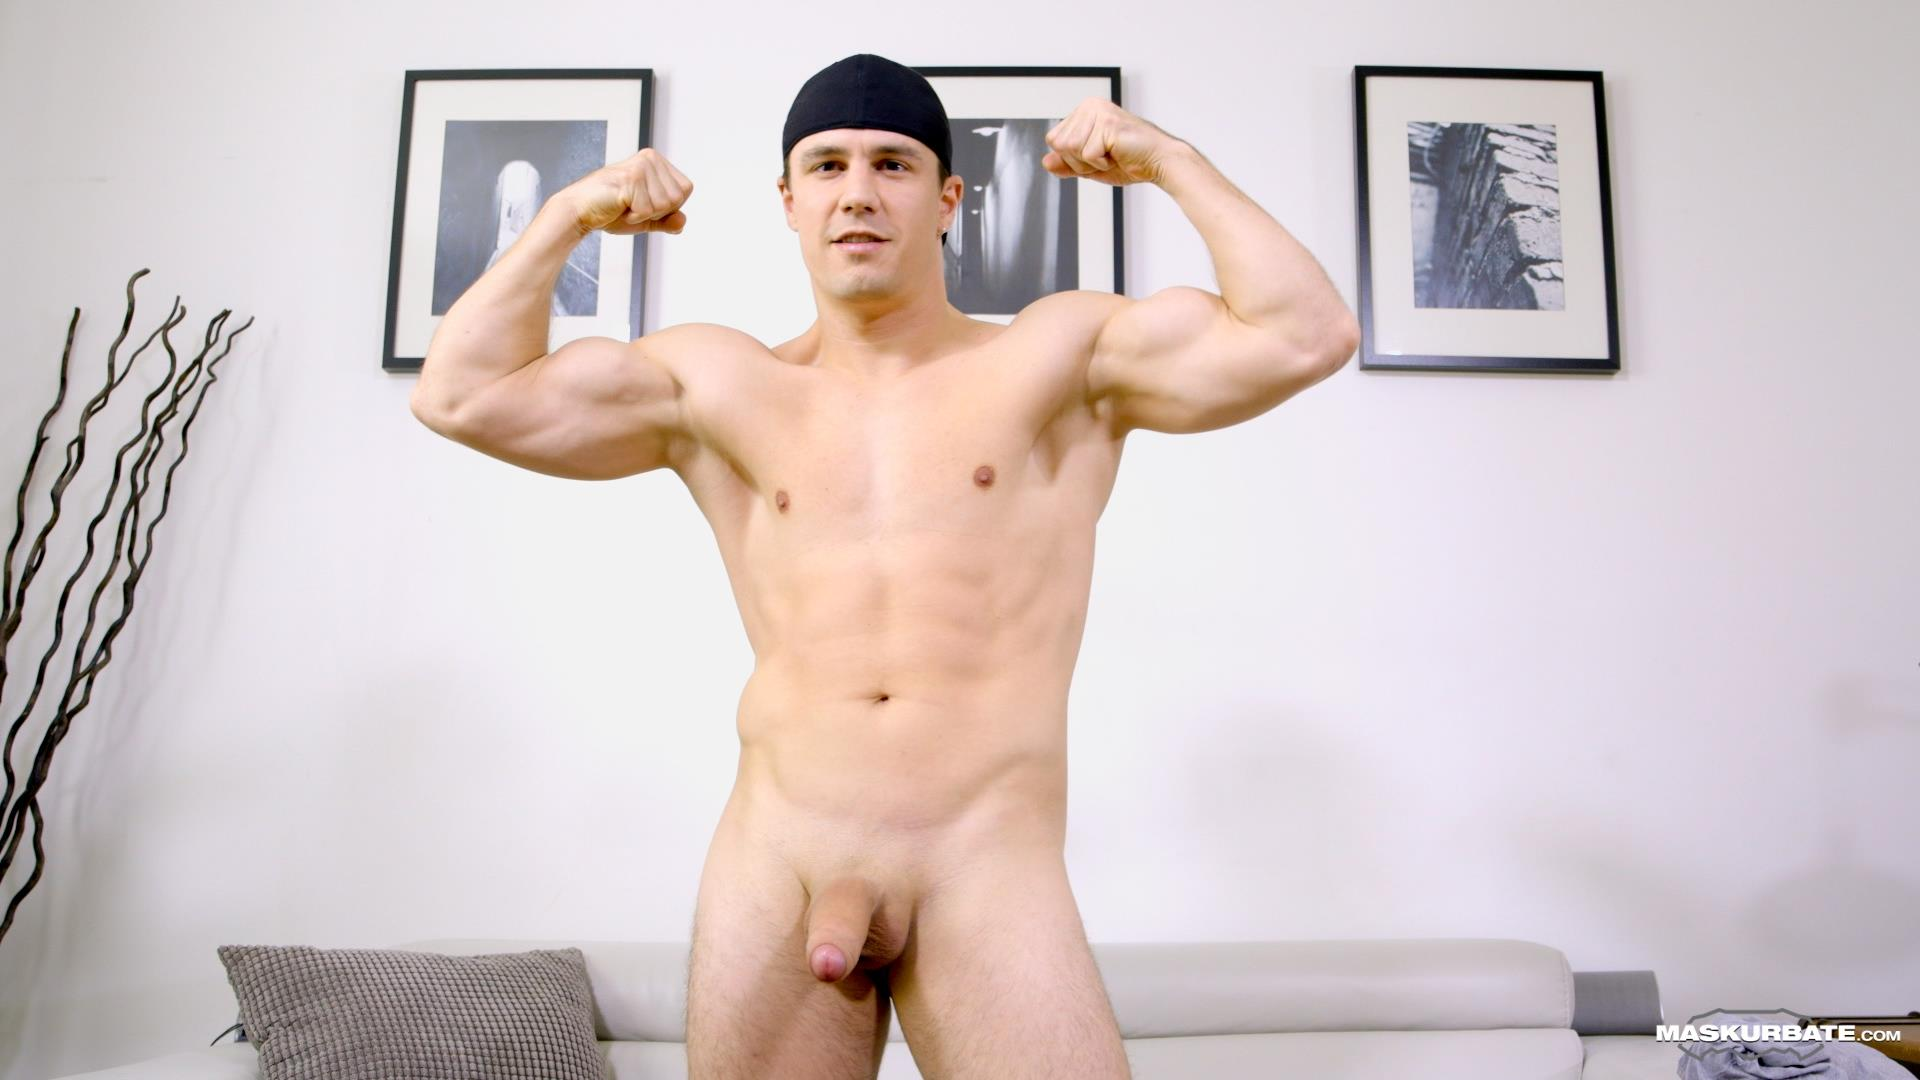 Maskurbate-Ricky-Muscl-Jock-Stroking-His-Big-Uncut-Cock-Amateur-Gay-Porn-06 Smooth Muscle Jock Stroking His Big Uncut Cock